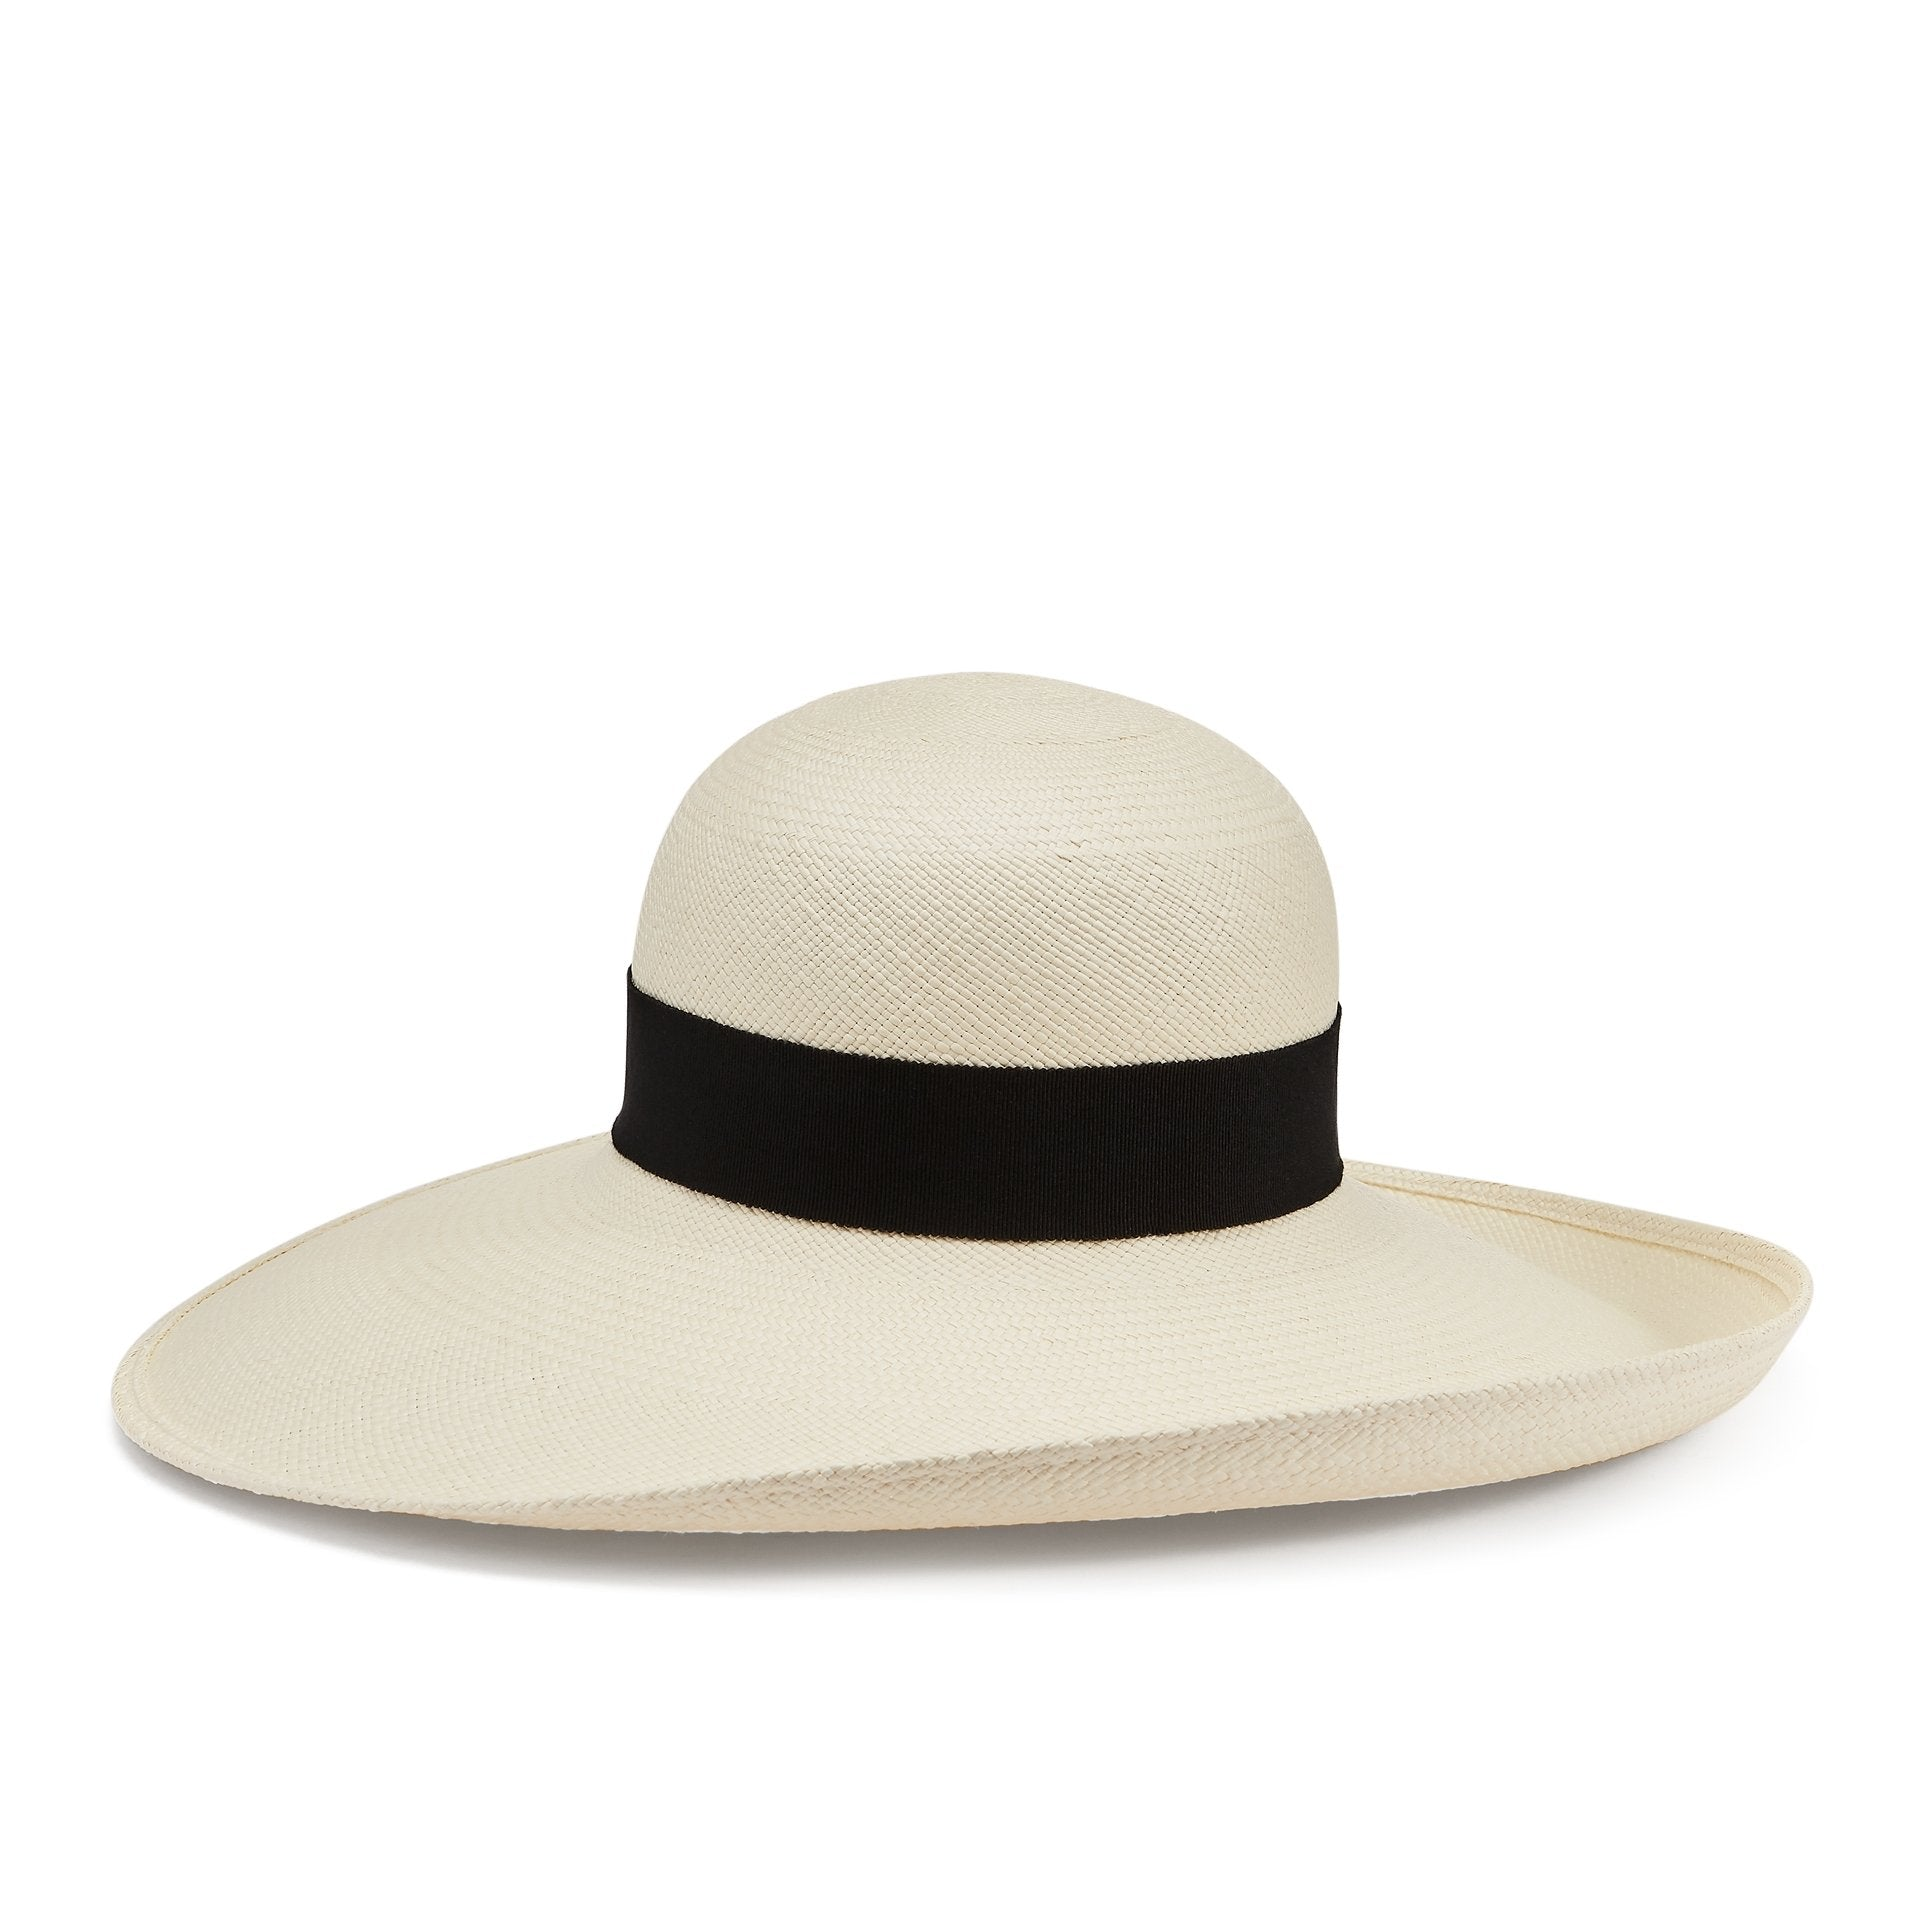 Cleopatra wide brim Panama - Panamas, Straw and Sun Hats for Women - Lock & Co. Hatters London UK